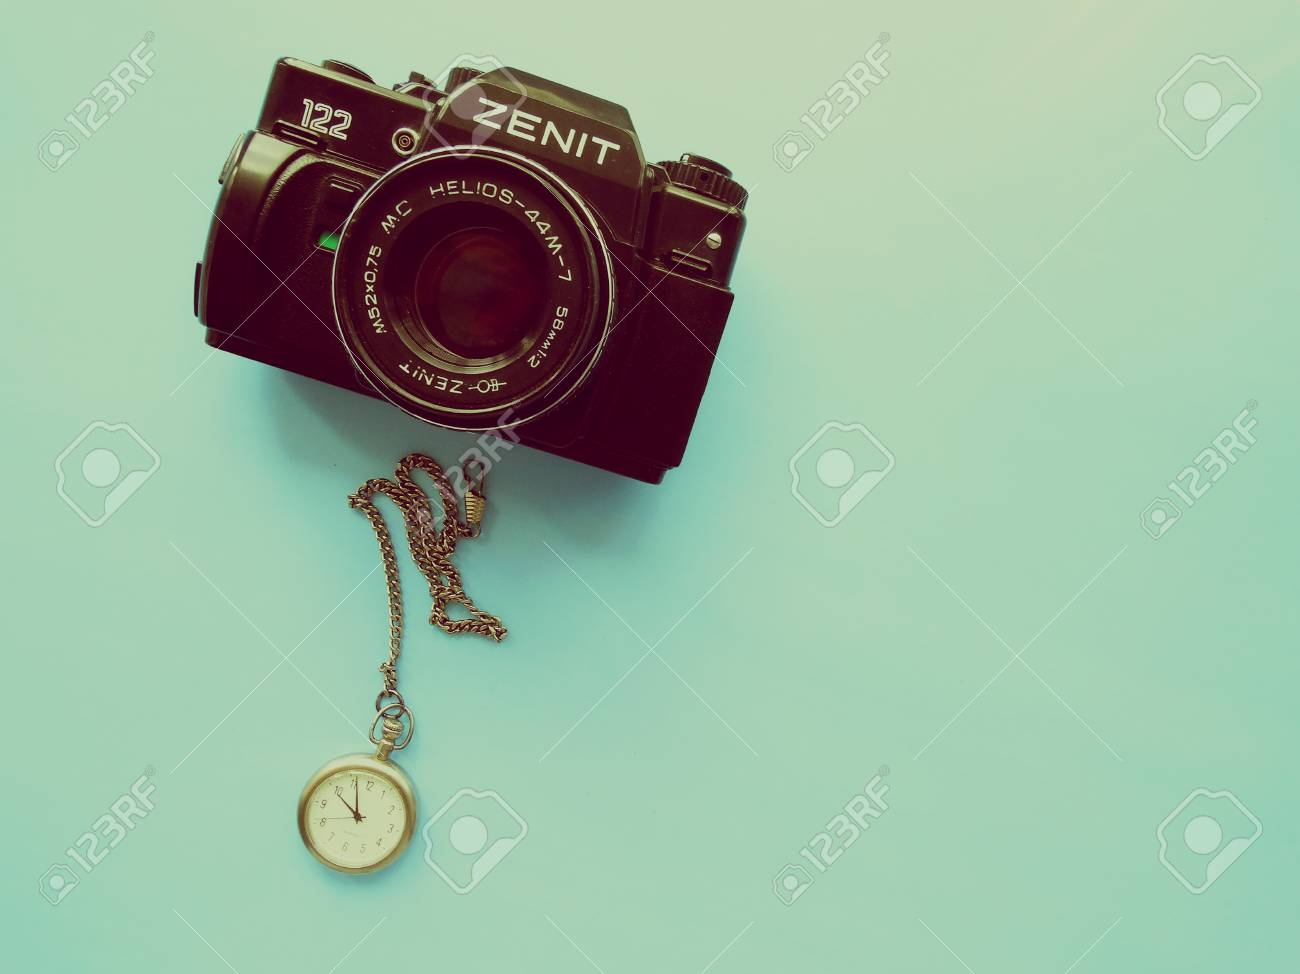 Old Camera Zenith Vintage Style Retro Background Wallpaper 1300x974